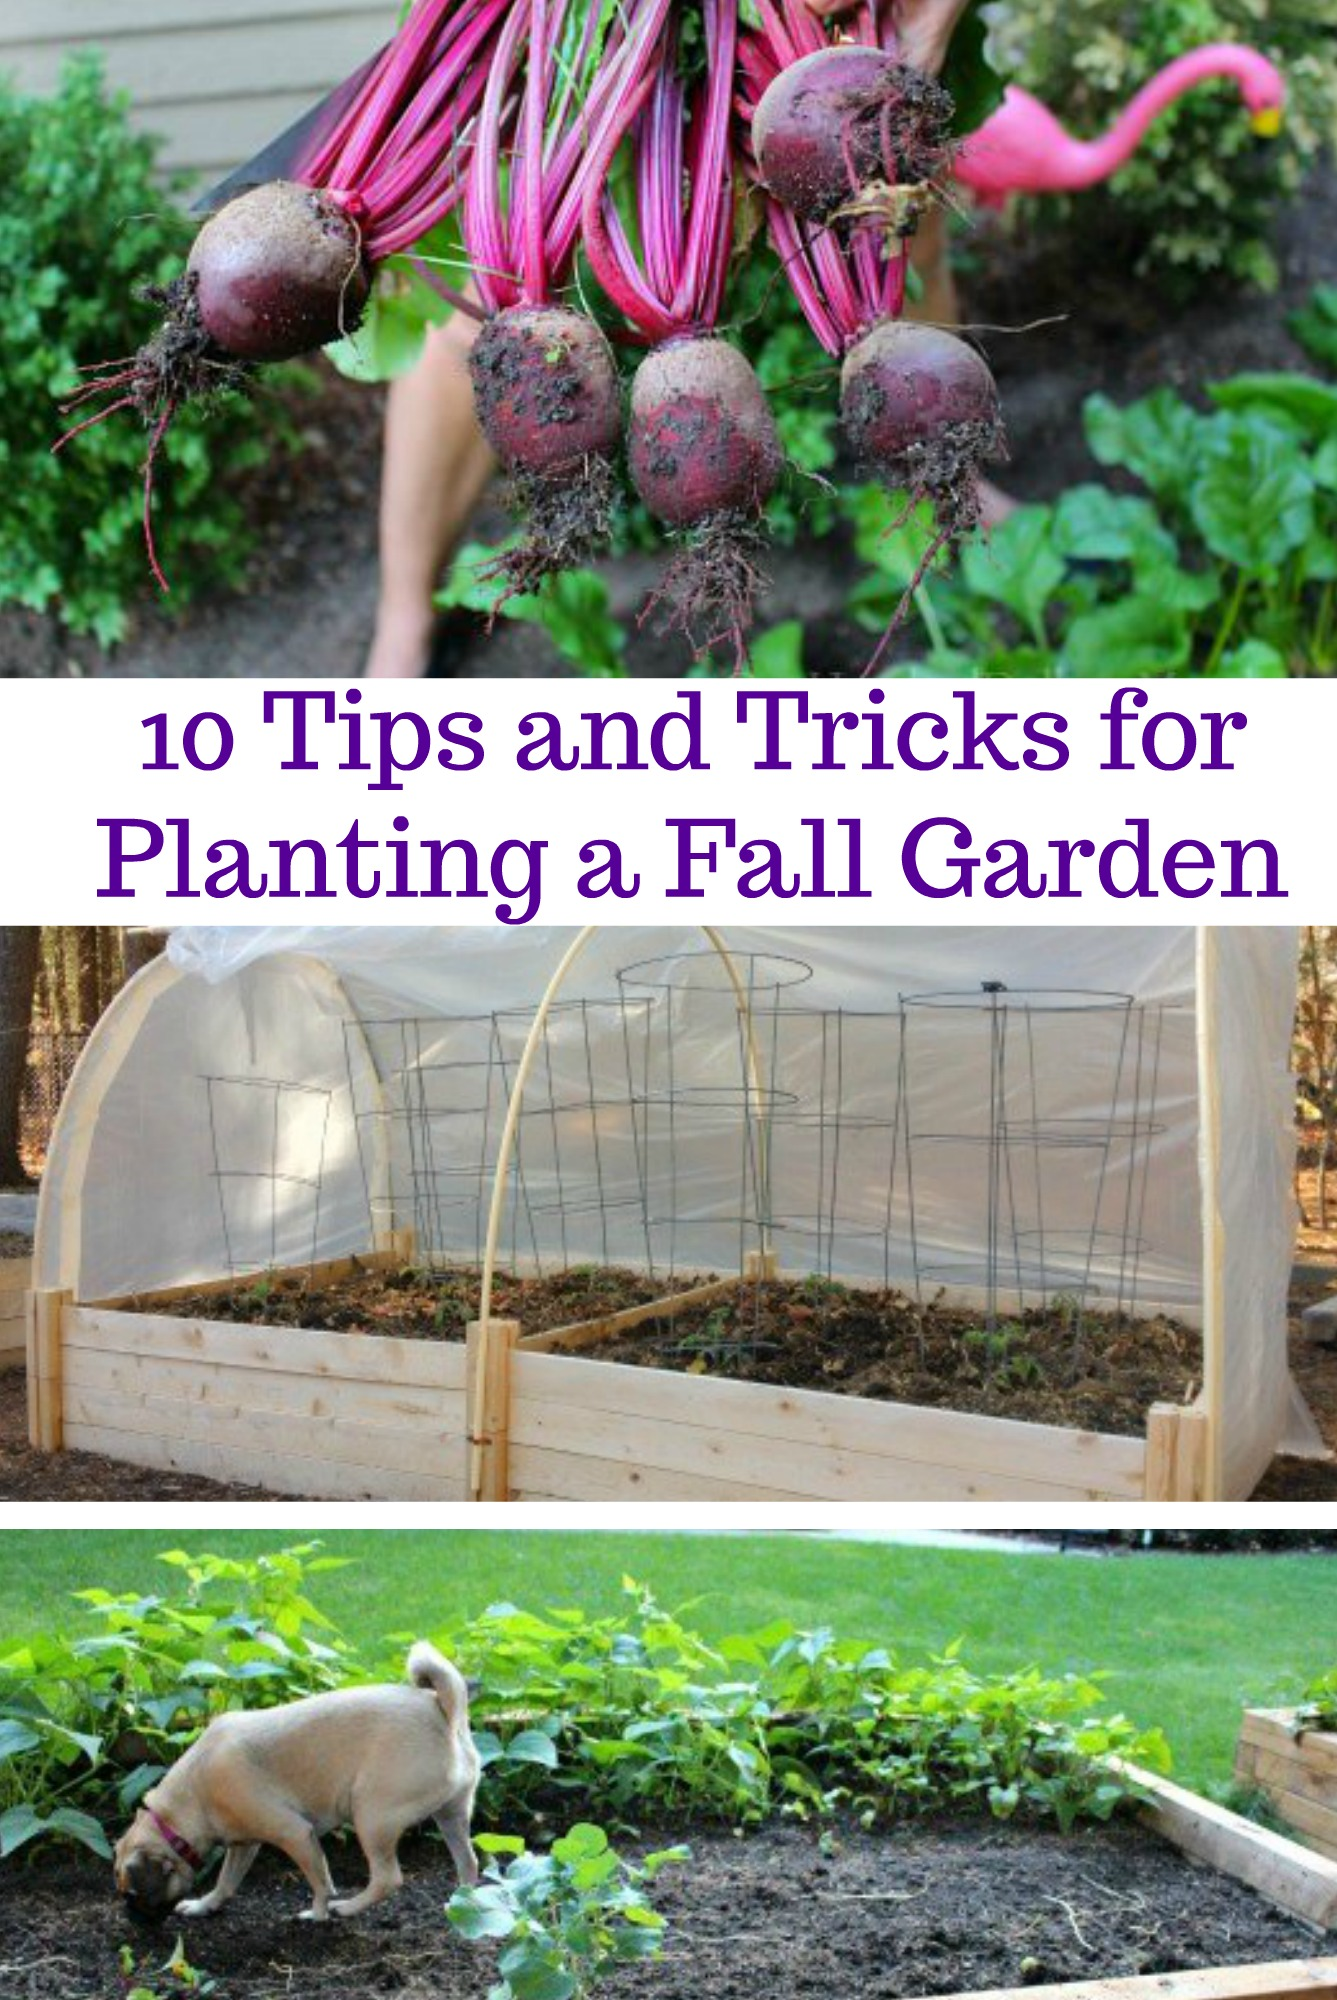 10 Tips and Tricks for Planting a Fall Garden e Hundred Dollars